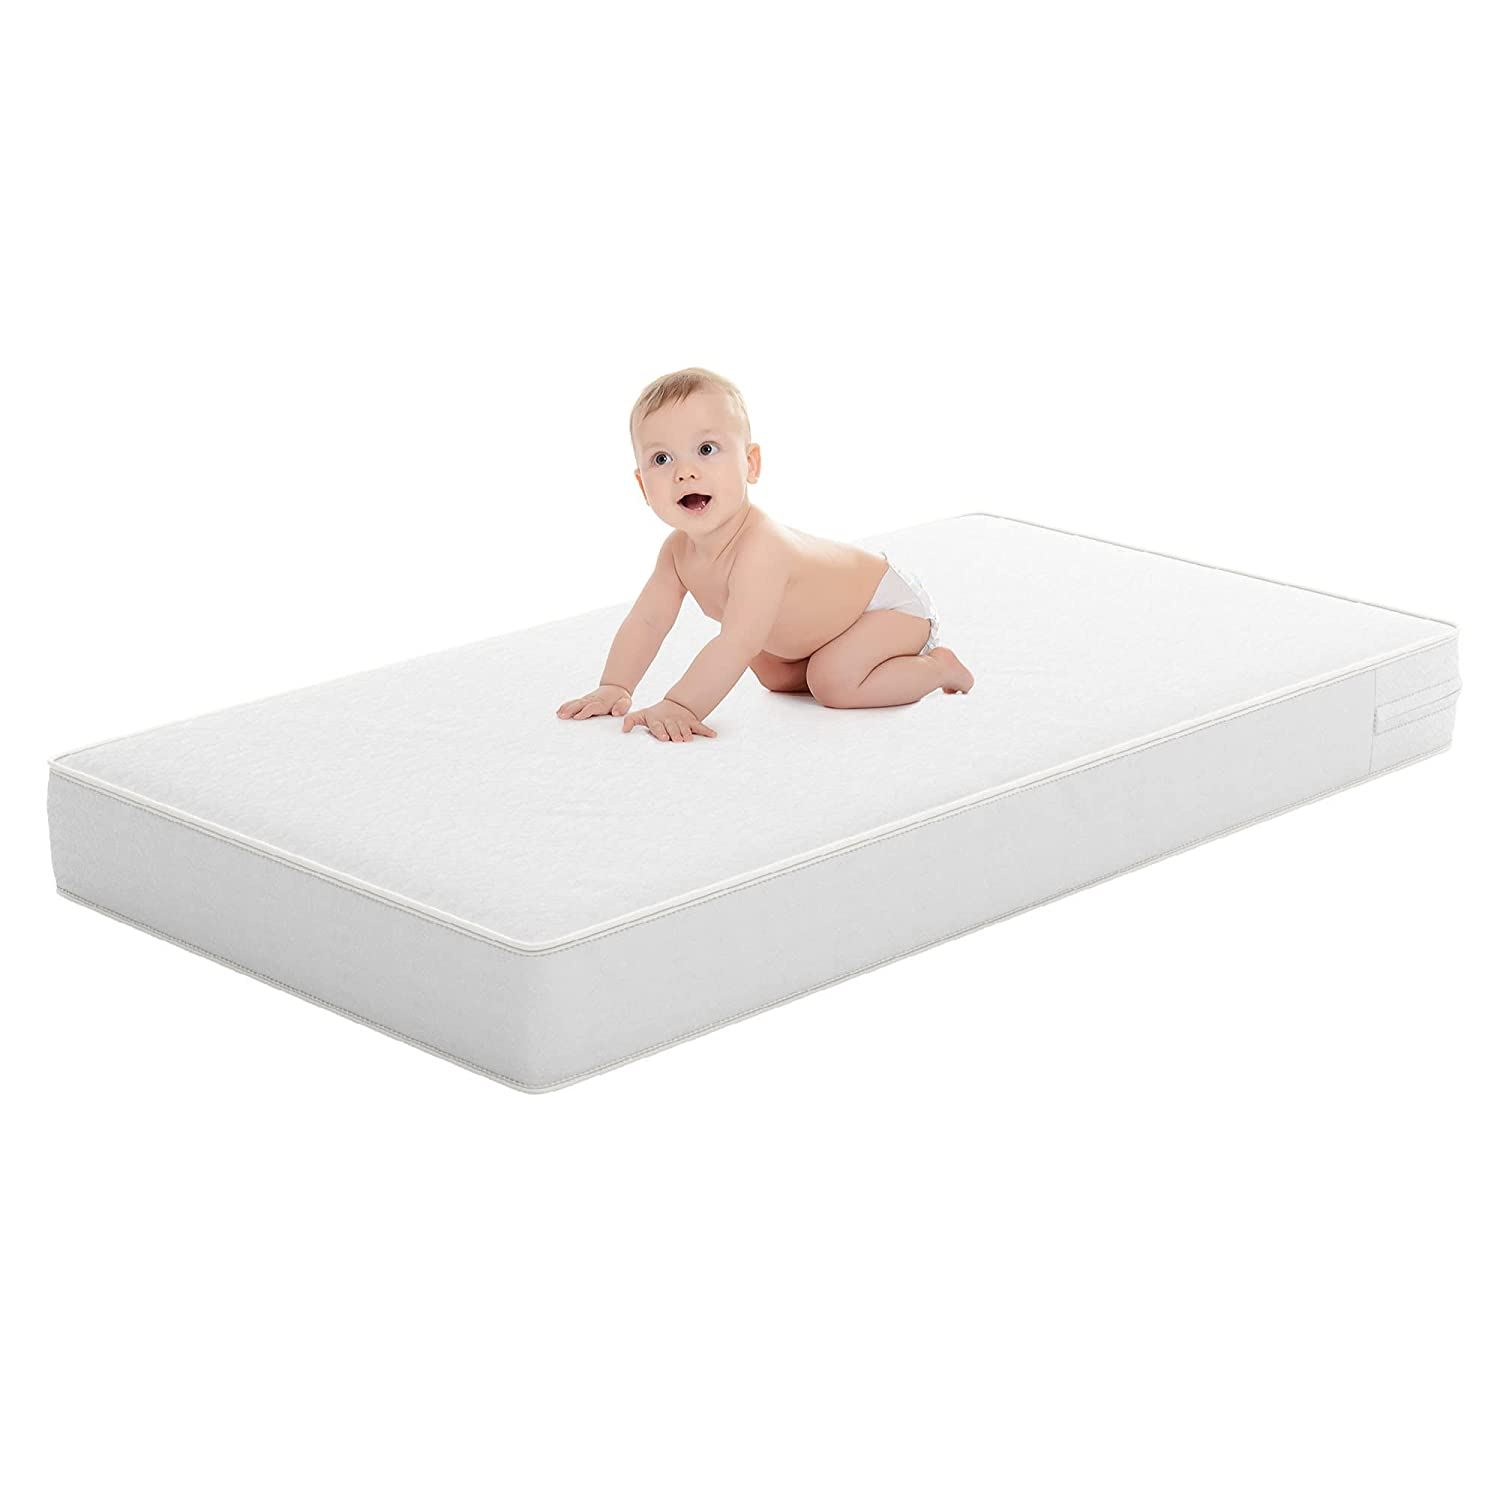 Bed Mattress for Baby & Toddler